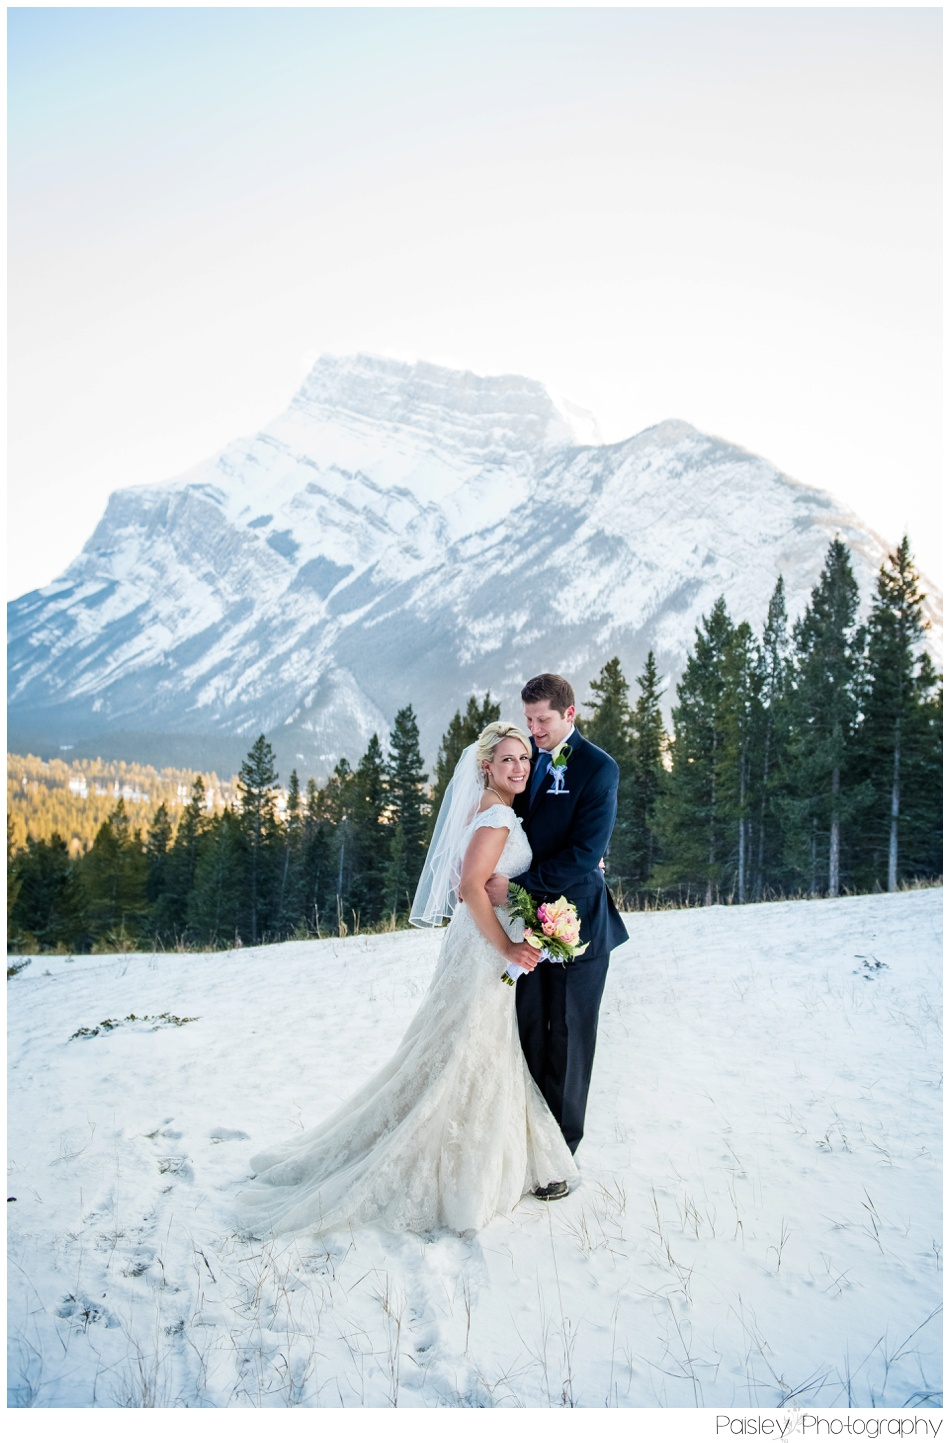 Bride & Groom, Mountain Bride, Mountain Wedding, Banff Mountain wedding, Banff Wedding Photographer, Banff Photographer, Tunnel Mountain Wedding, Destination Wedding, Destination Wedding Photographer